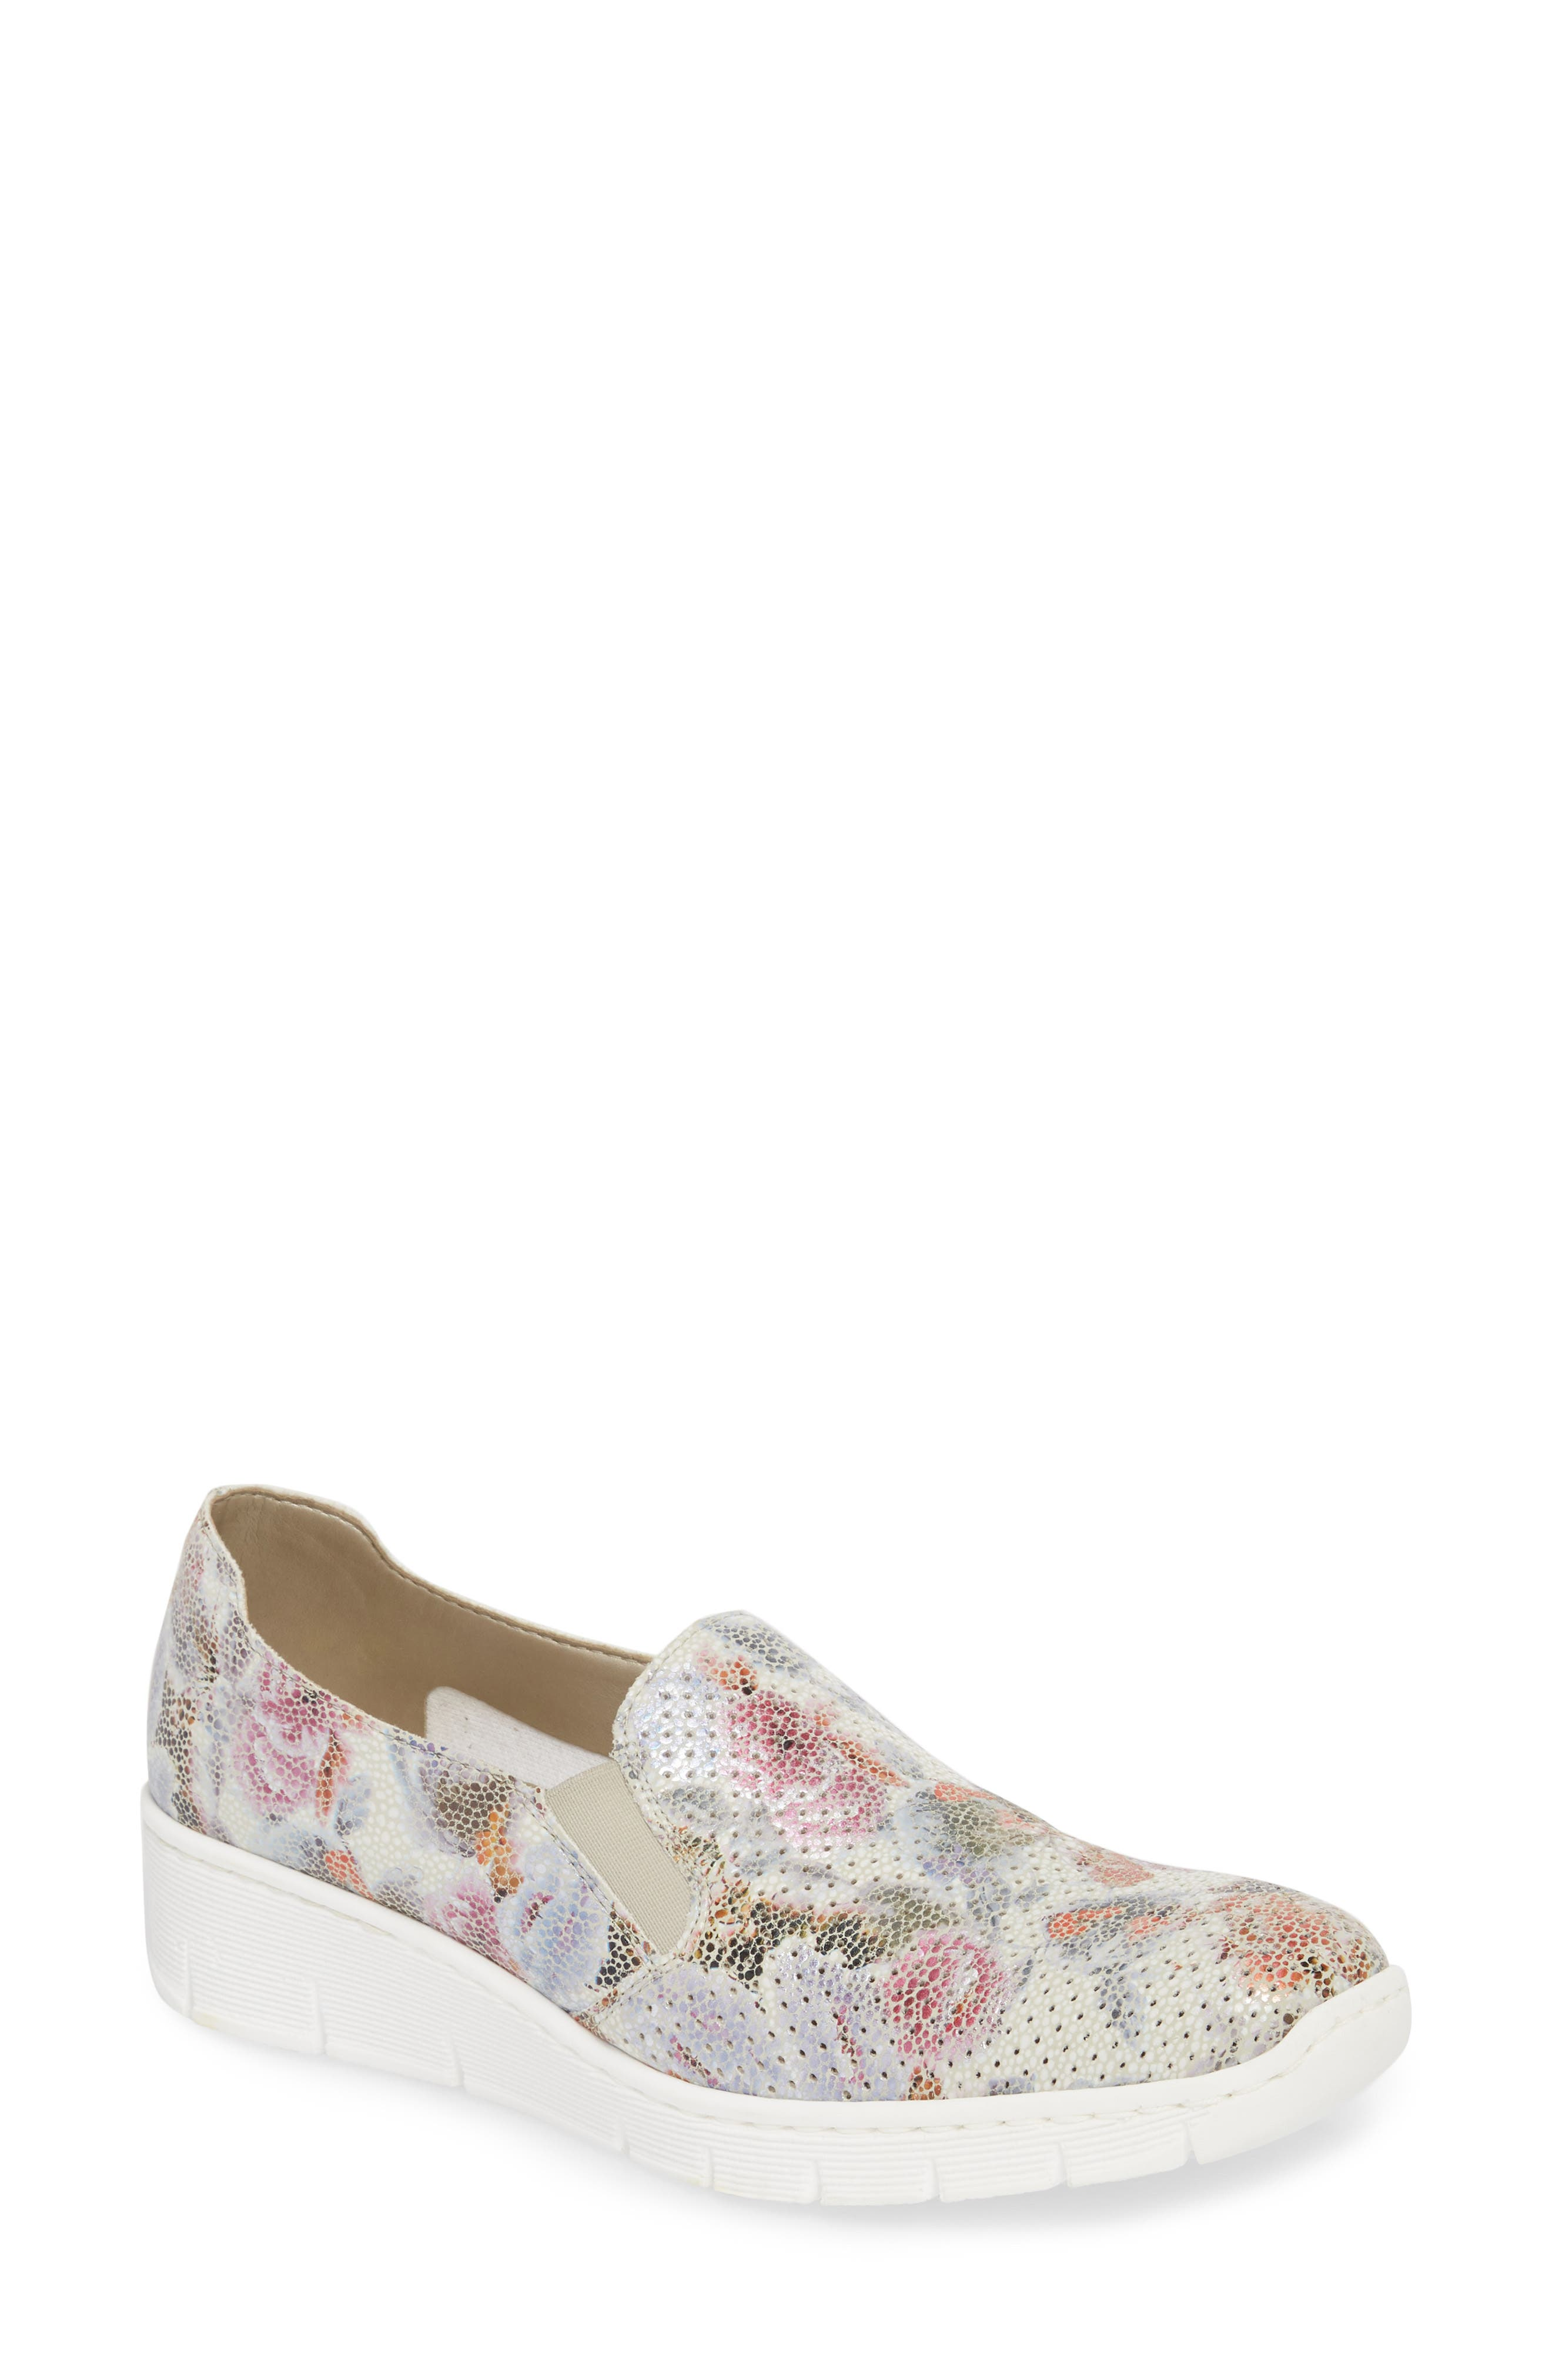 Doris A5 Wedge Sneaker,                         Main,                         color, 105